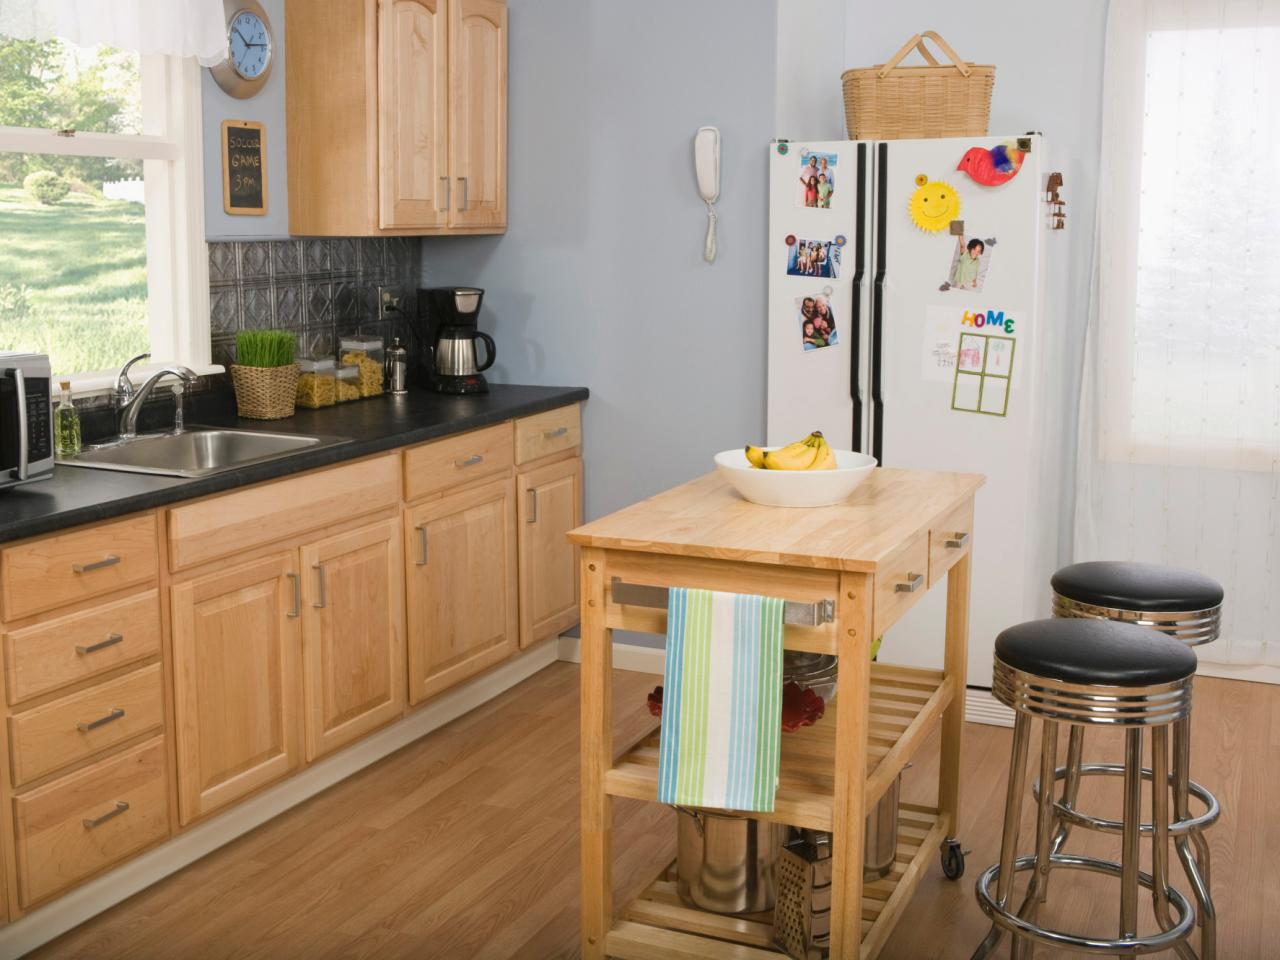 Kitchen Island Breakfast Bar: Pictures & Ideas From HGTV | HGTV